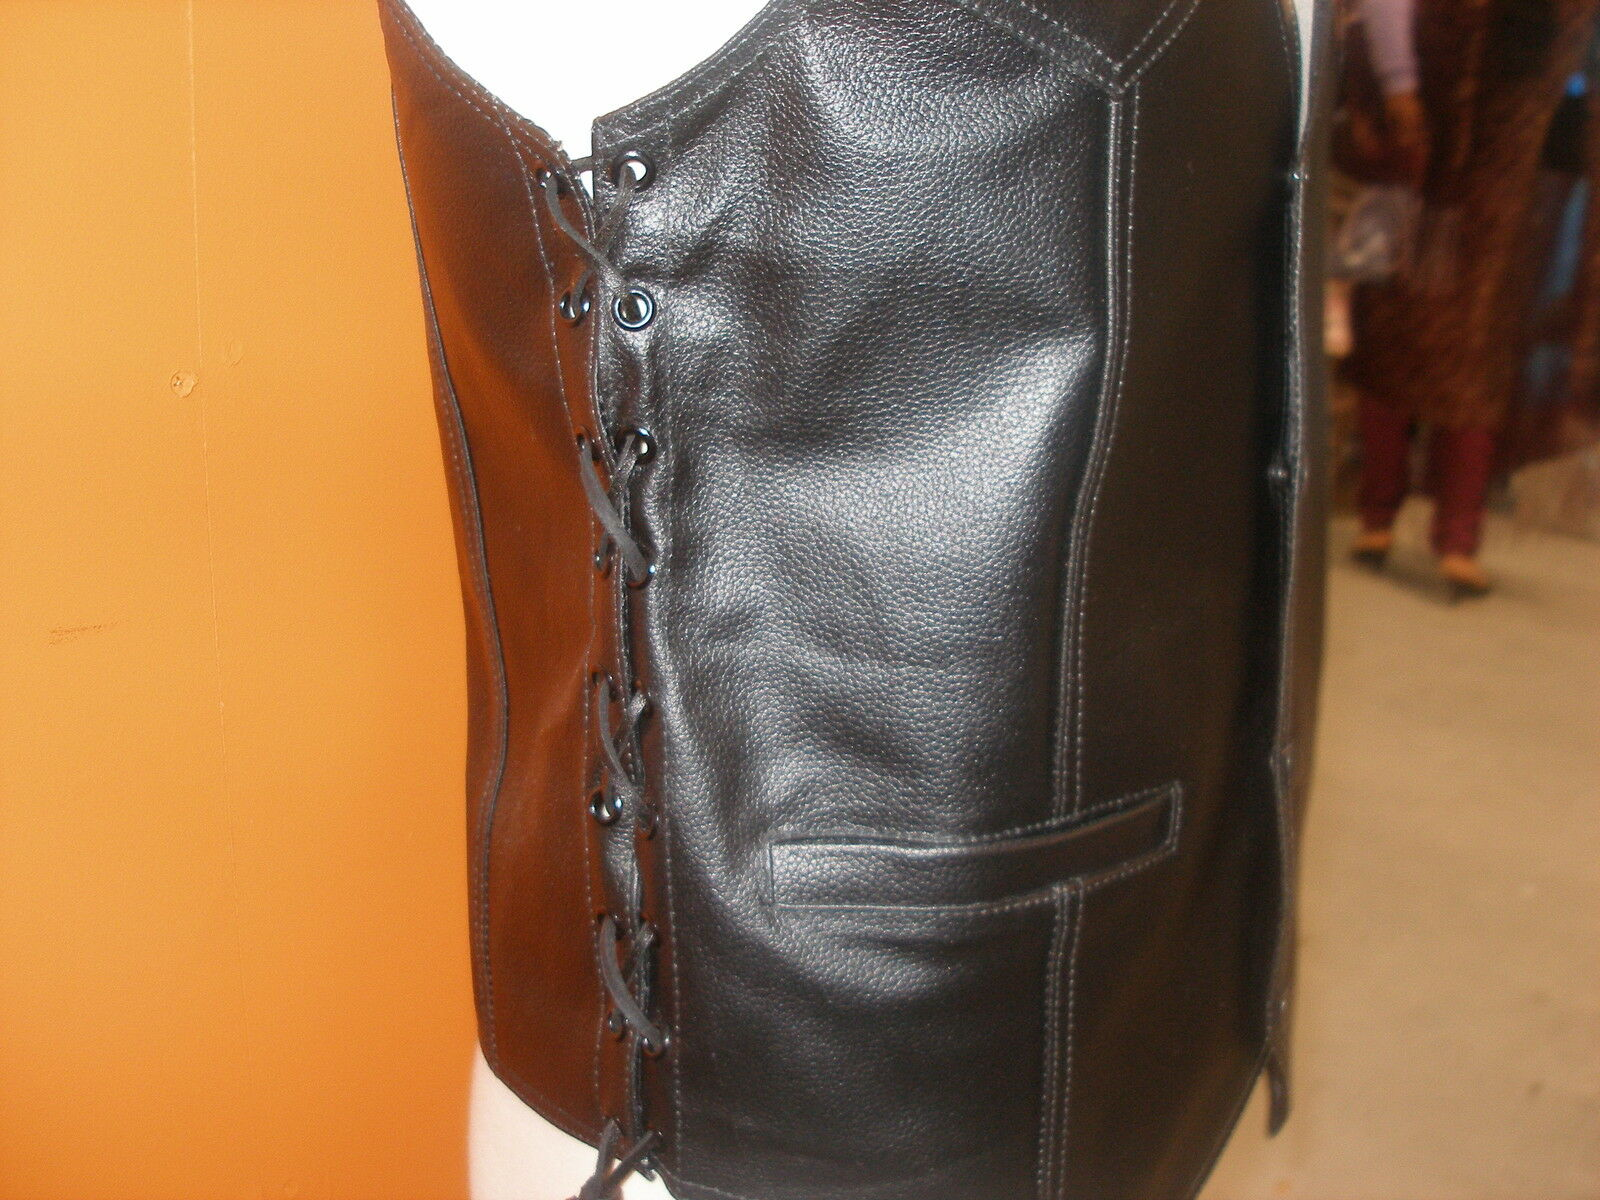 NEW LEATHER VEST FOR MEN 100% COWHIDE LEATHER.SIZES SMALL TO 10XL.